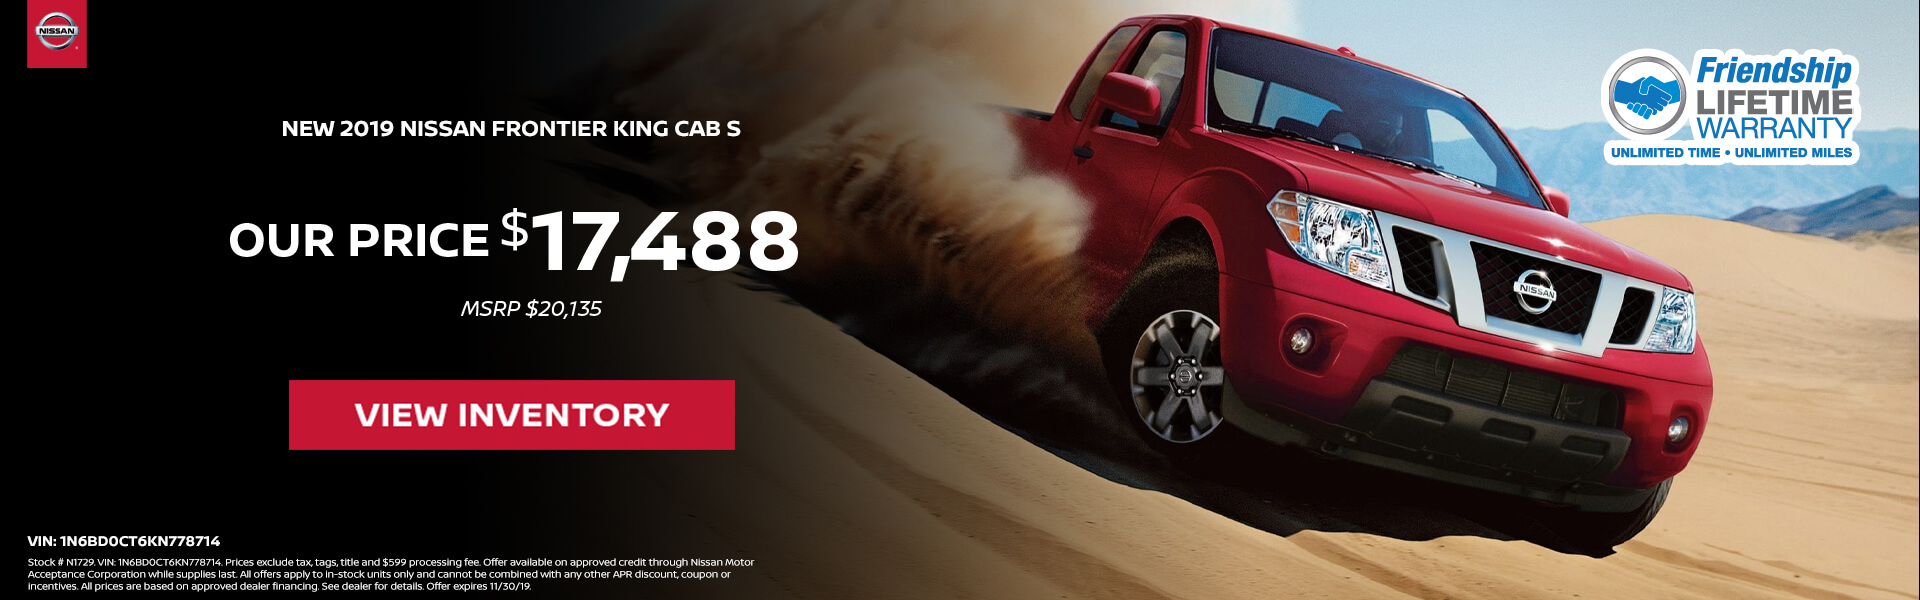 Nissan Frontier $17,488 Purchase